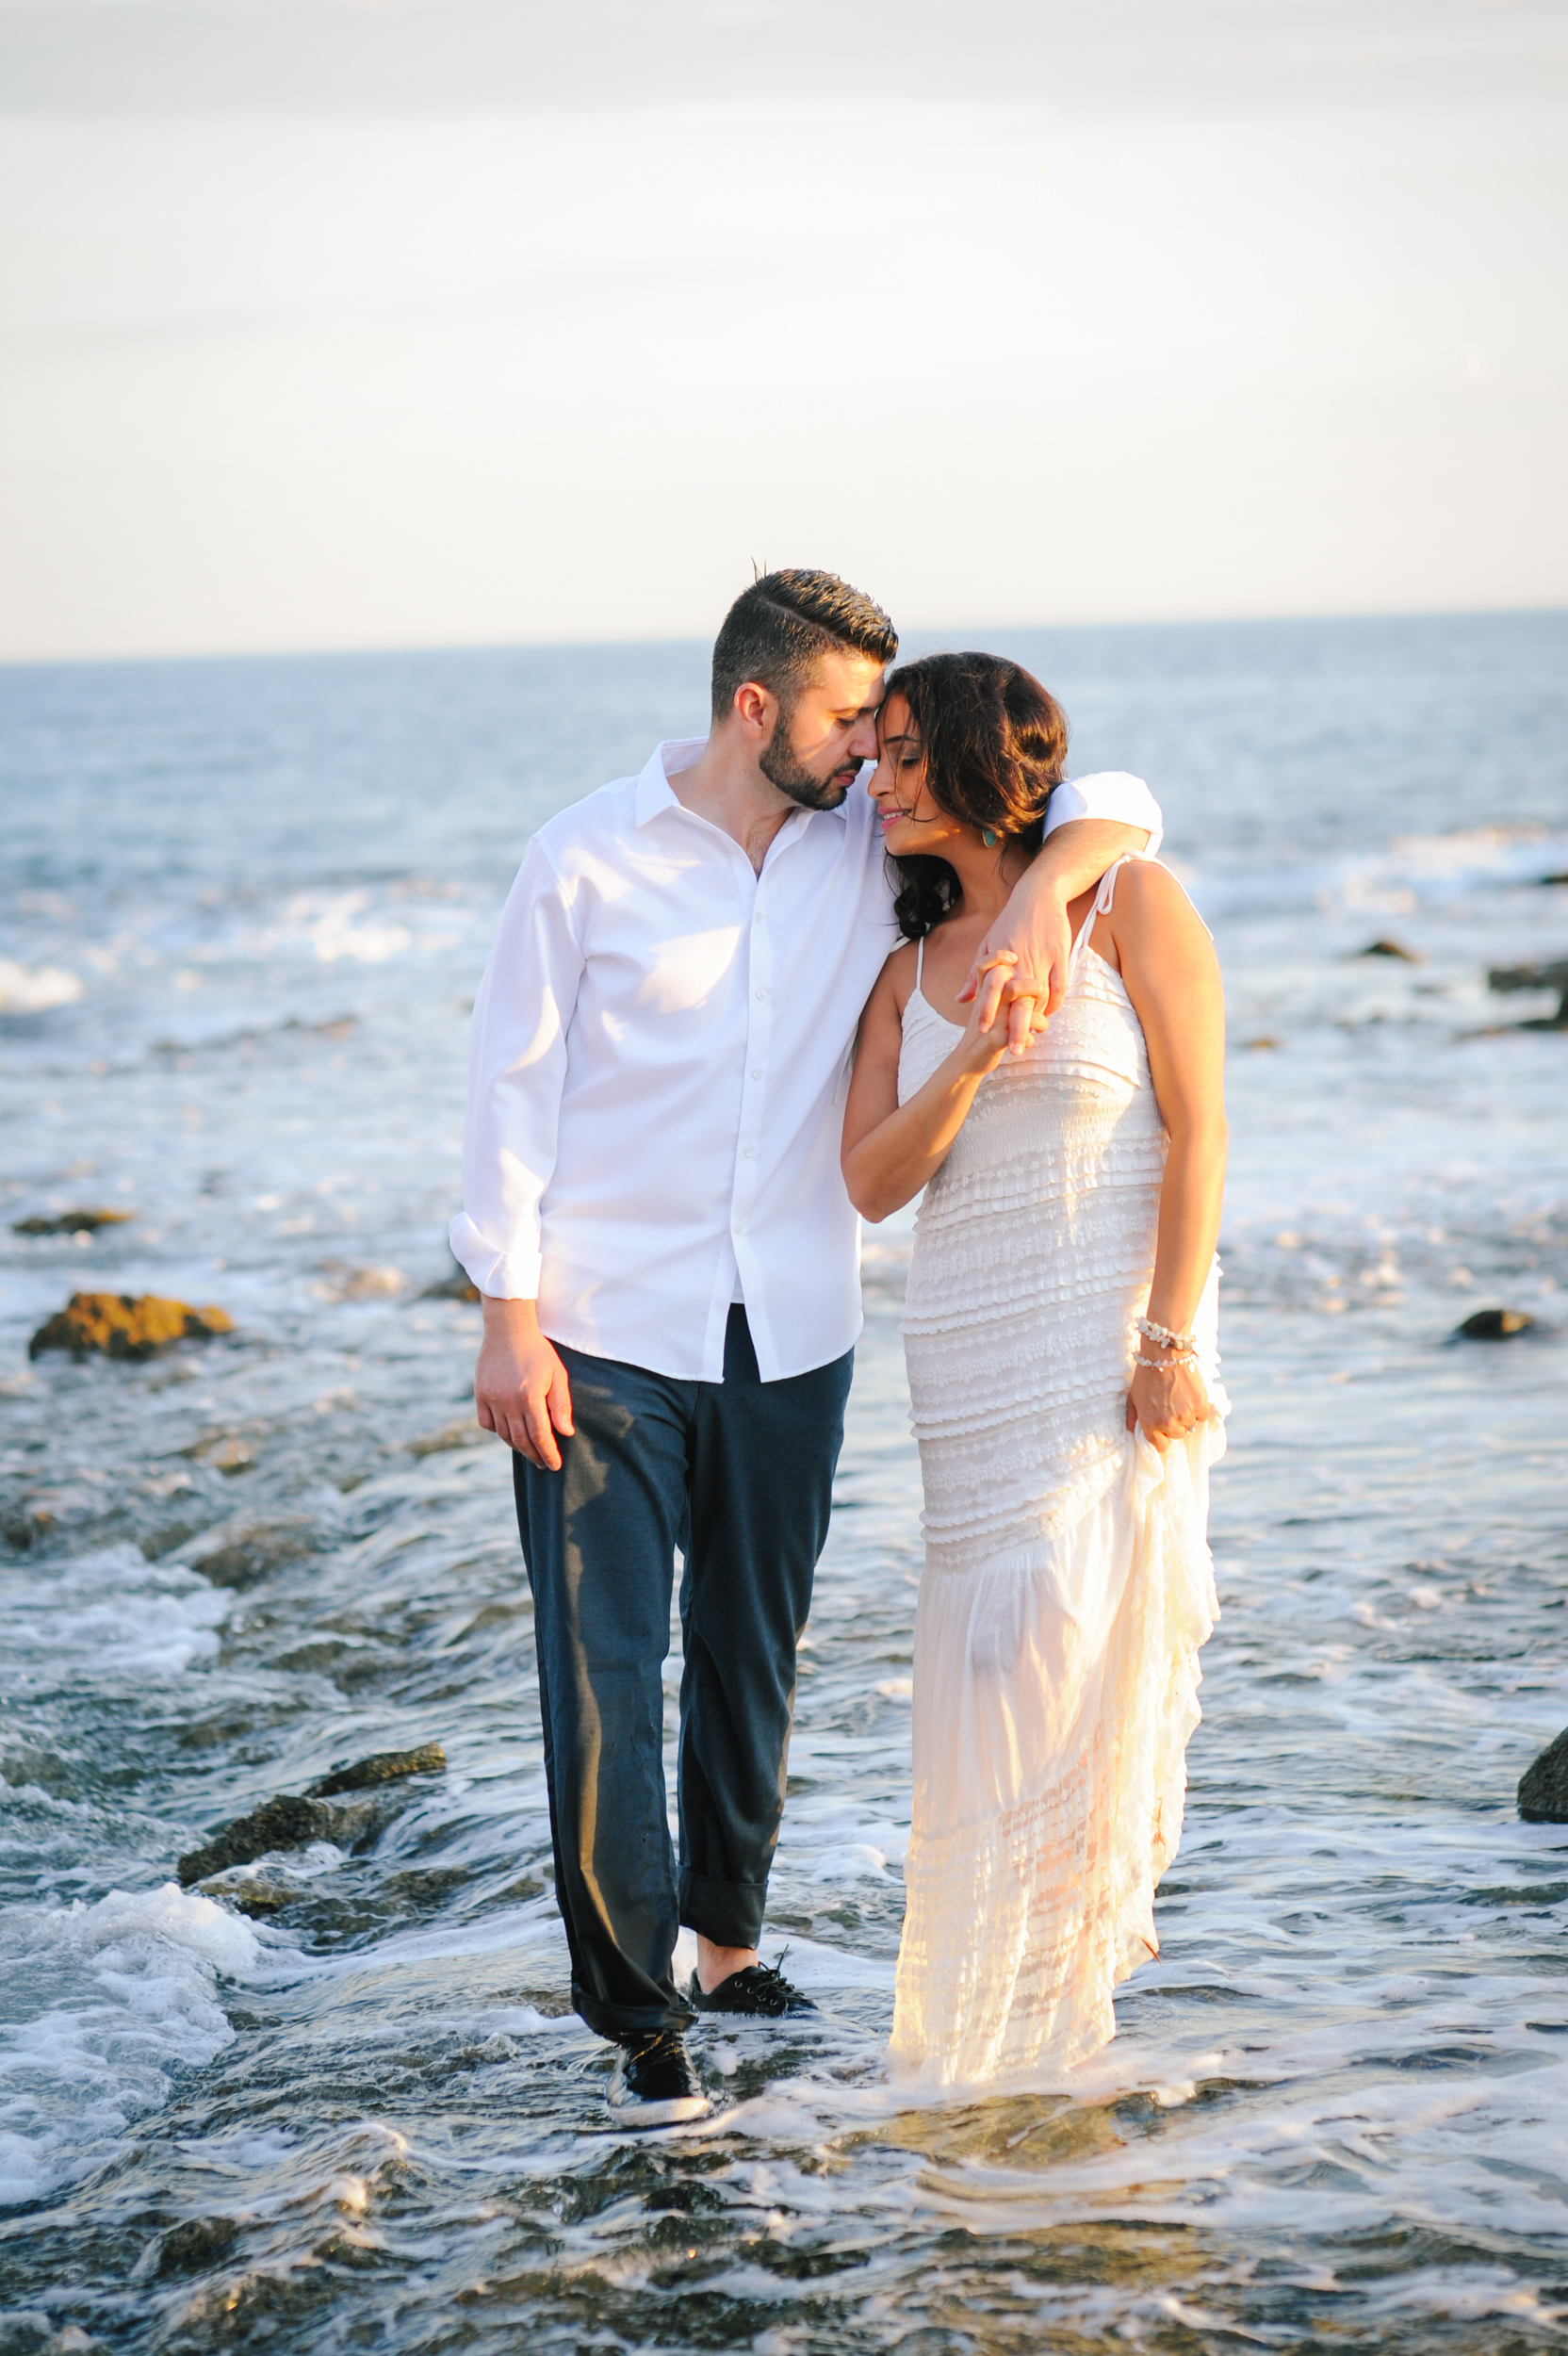 Laguna-Beach-Engagement-0027.JPG